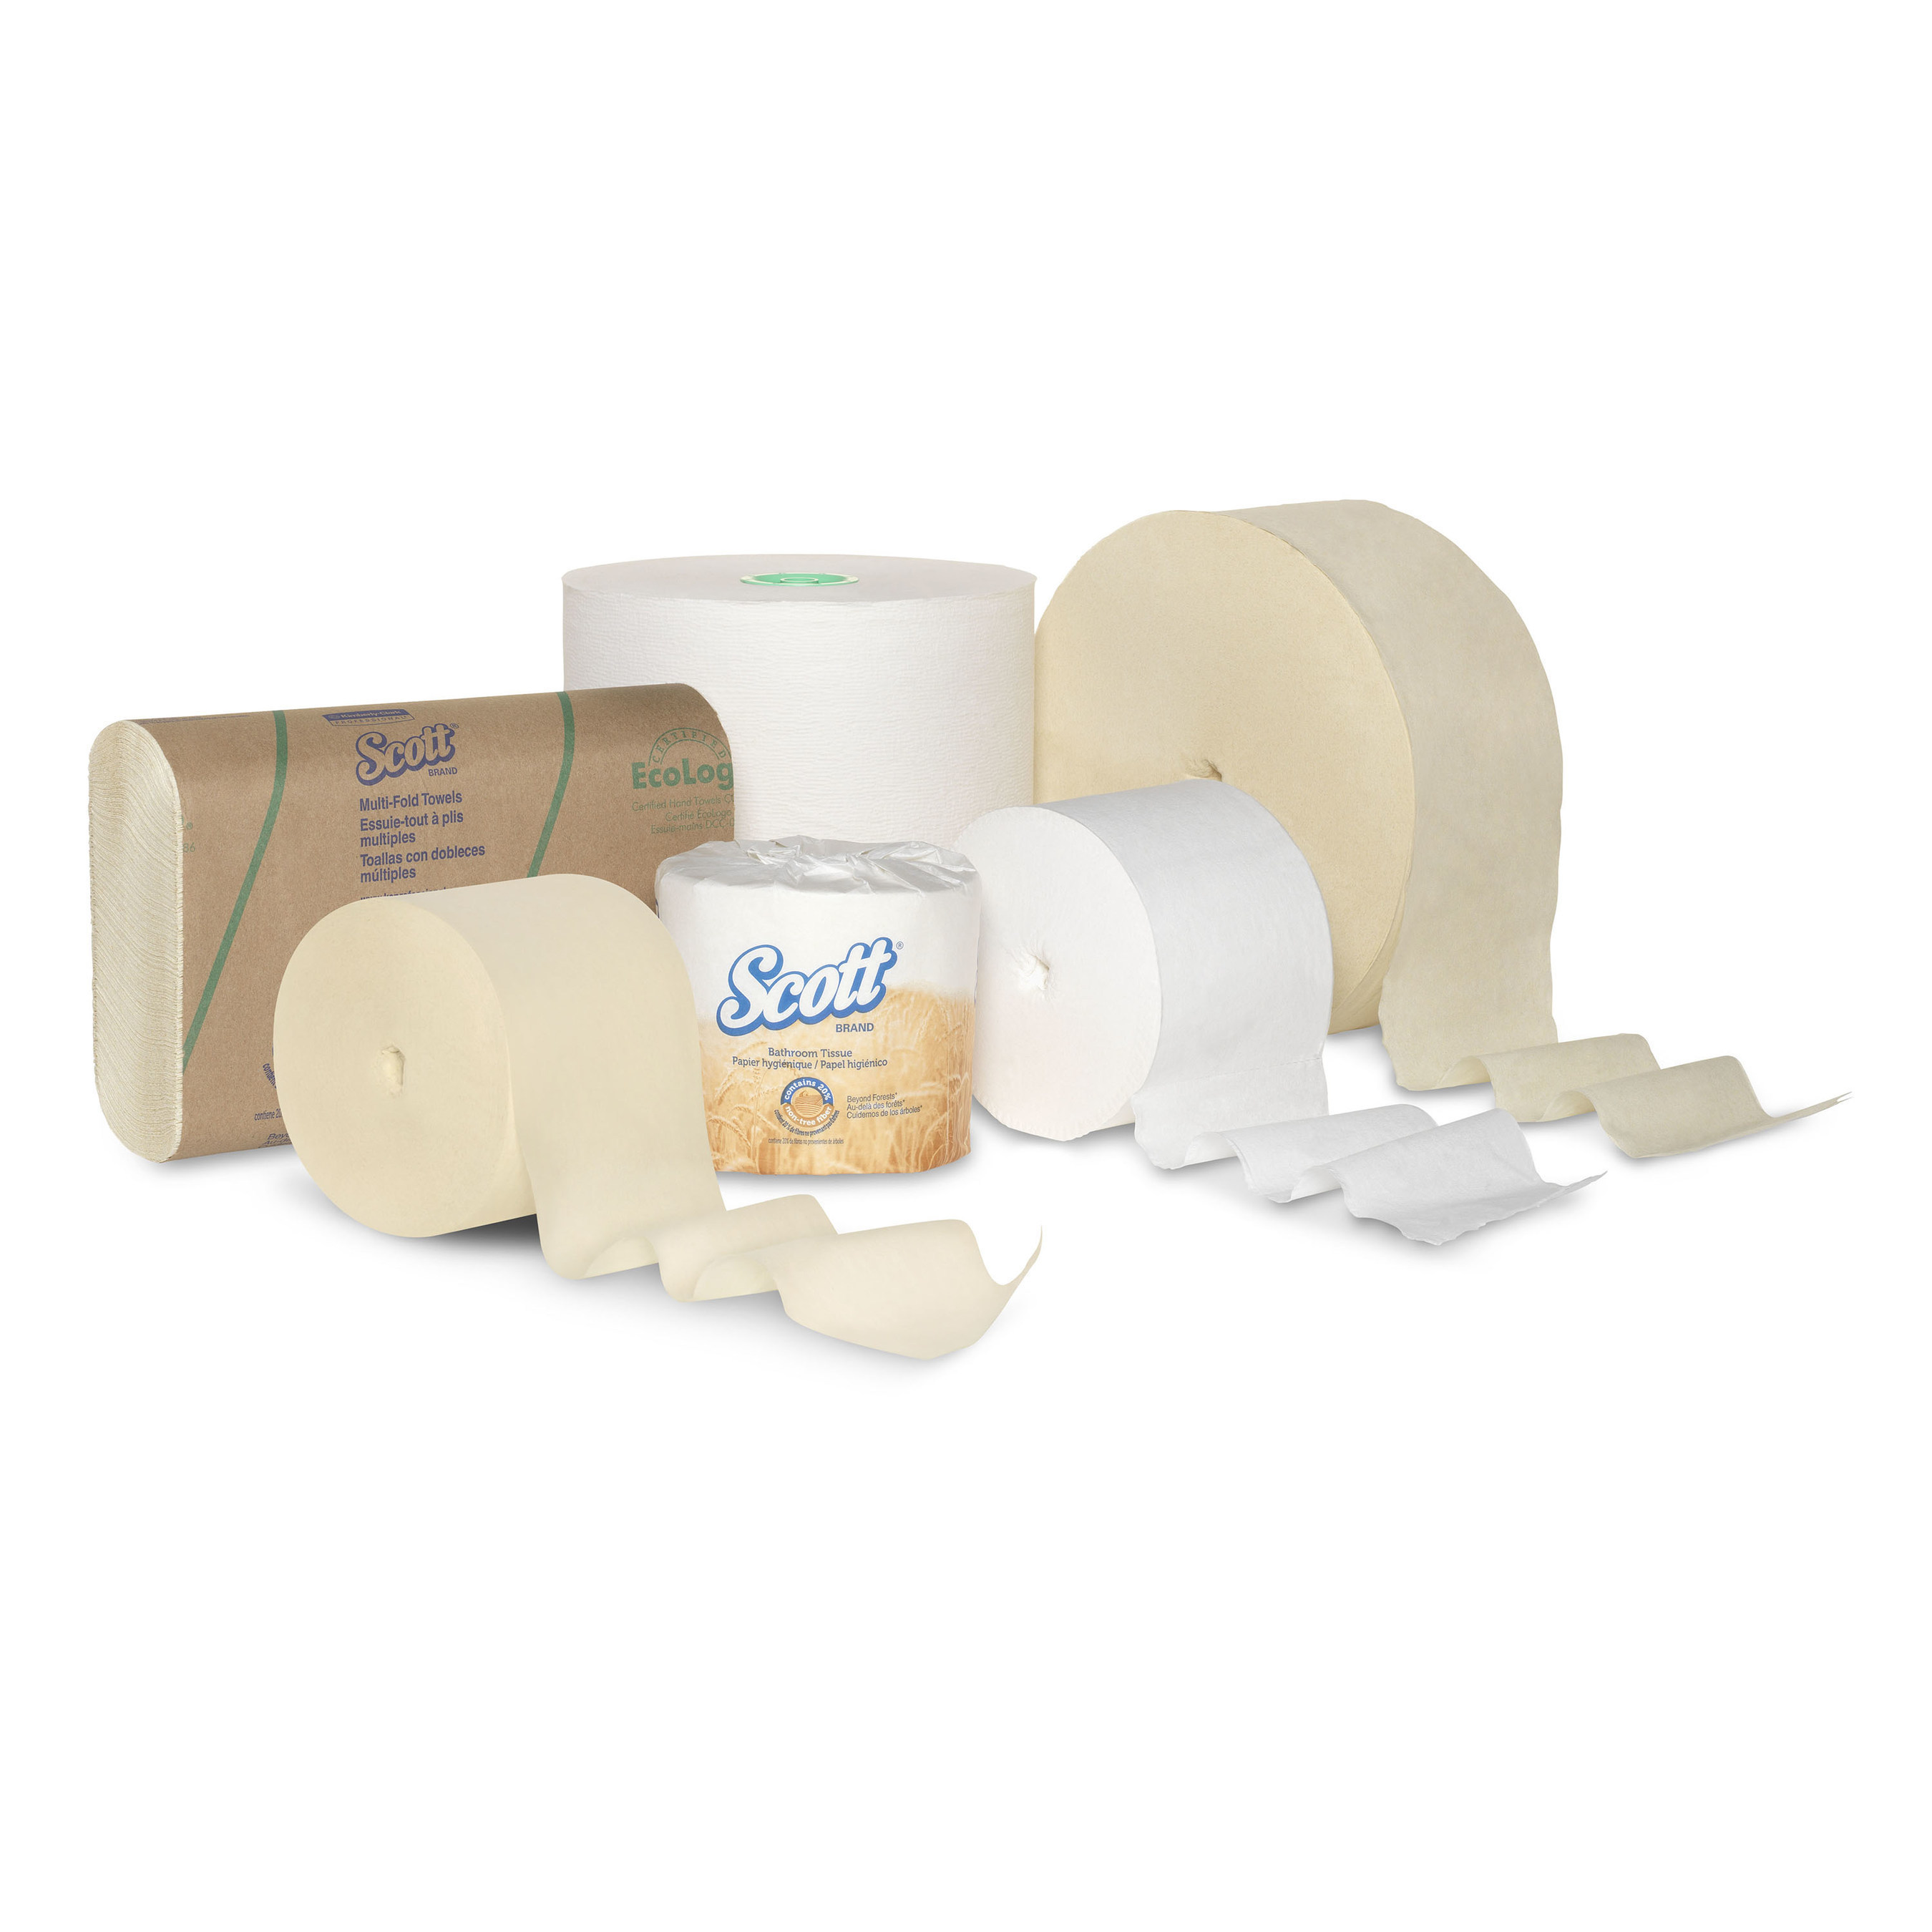 Kimberly-Clark Professional has launched GreenHarvest products, a cutting edge offering that incorporates rapidly renewable plant-based fiber, such as wheat straw and bamboo, into Kleenex and Scott brand towel and tissue products.  GreenHarvest offerings include Kleenex hard roll towel and Kleenex Cottonelle coreless standard roll bathroom tissue made with 20 percent bamboo fiber, and Scott multi-fold towels, standard roll bathroom tissue, coreless JRT Jr. bathroom tissue and coreless standard roll bathroom tissue made with 20 percent wheat straw fiber.